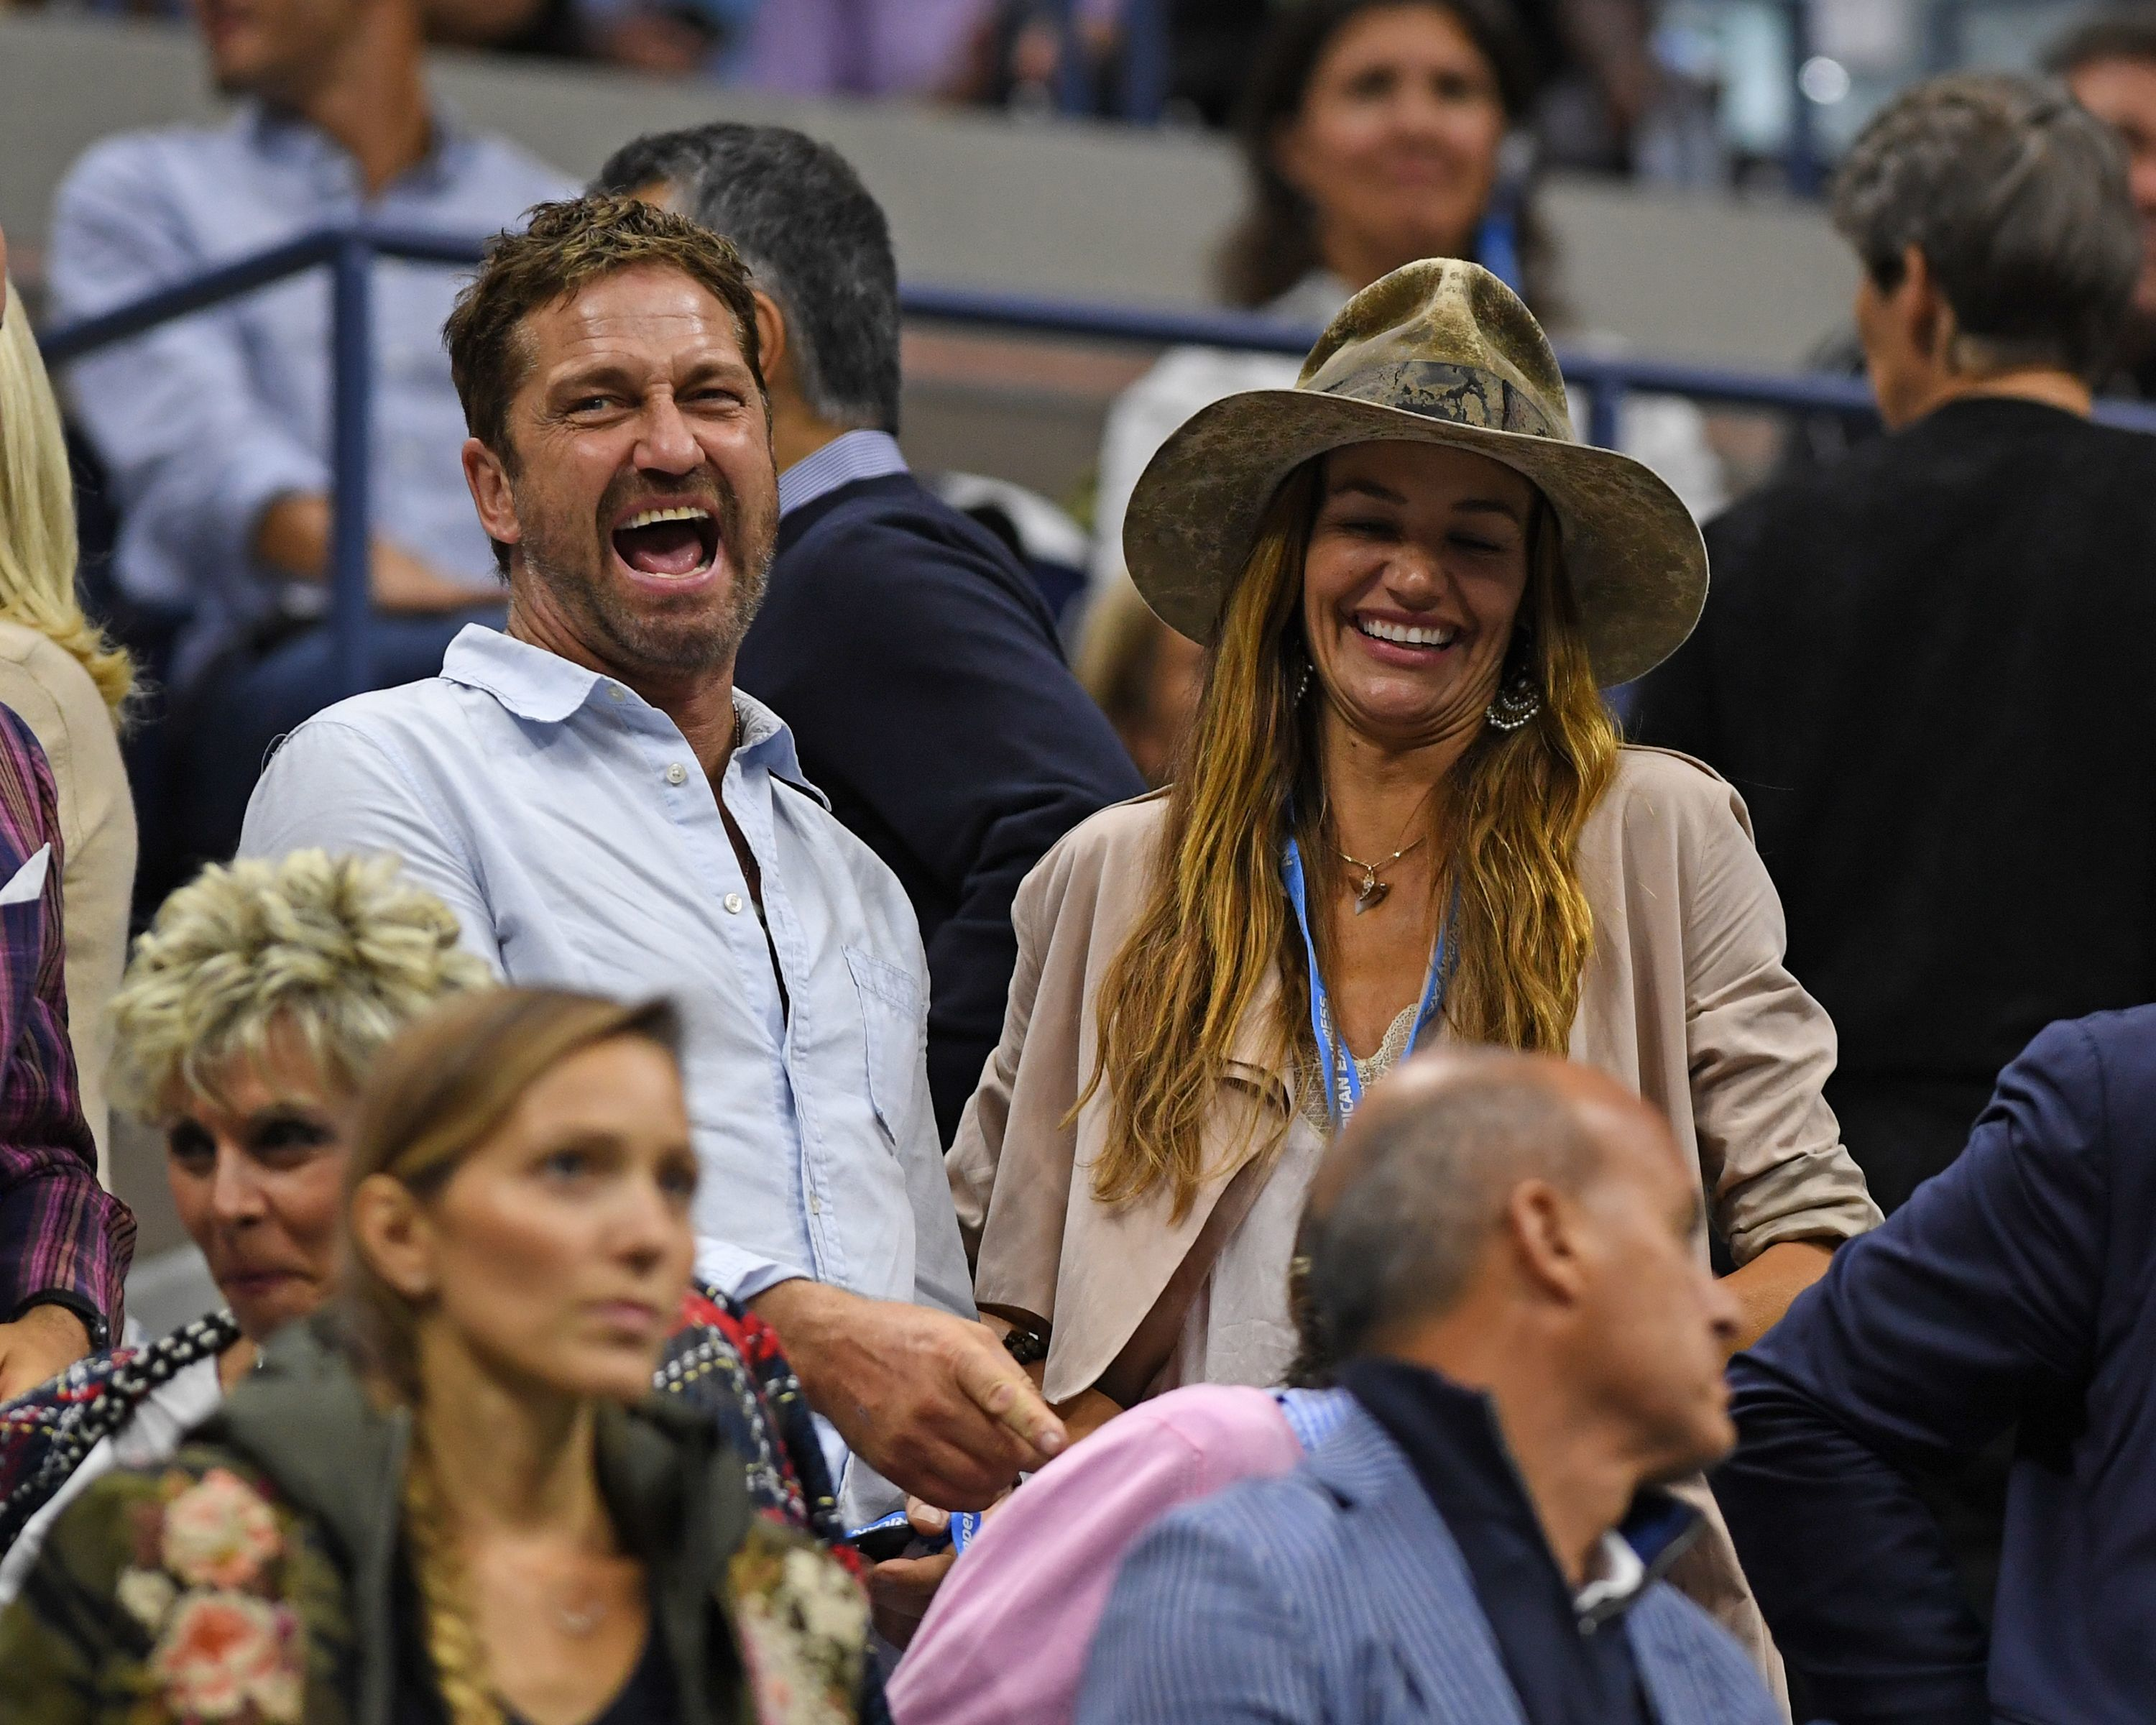 Gerard Butler and girlfriend Morgan Brown attend the U.S. Open at Arthur Ashe Stadium at the USTA Billie Jean King National Tennis Center in Flushing, New York, on Sept. 9, 2018.